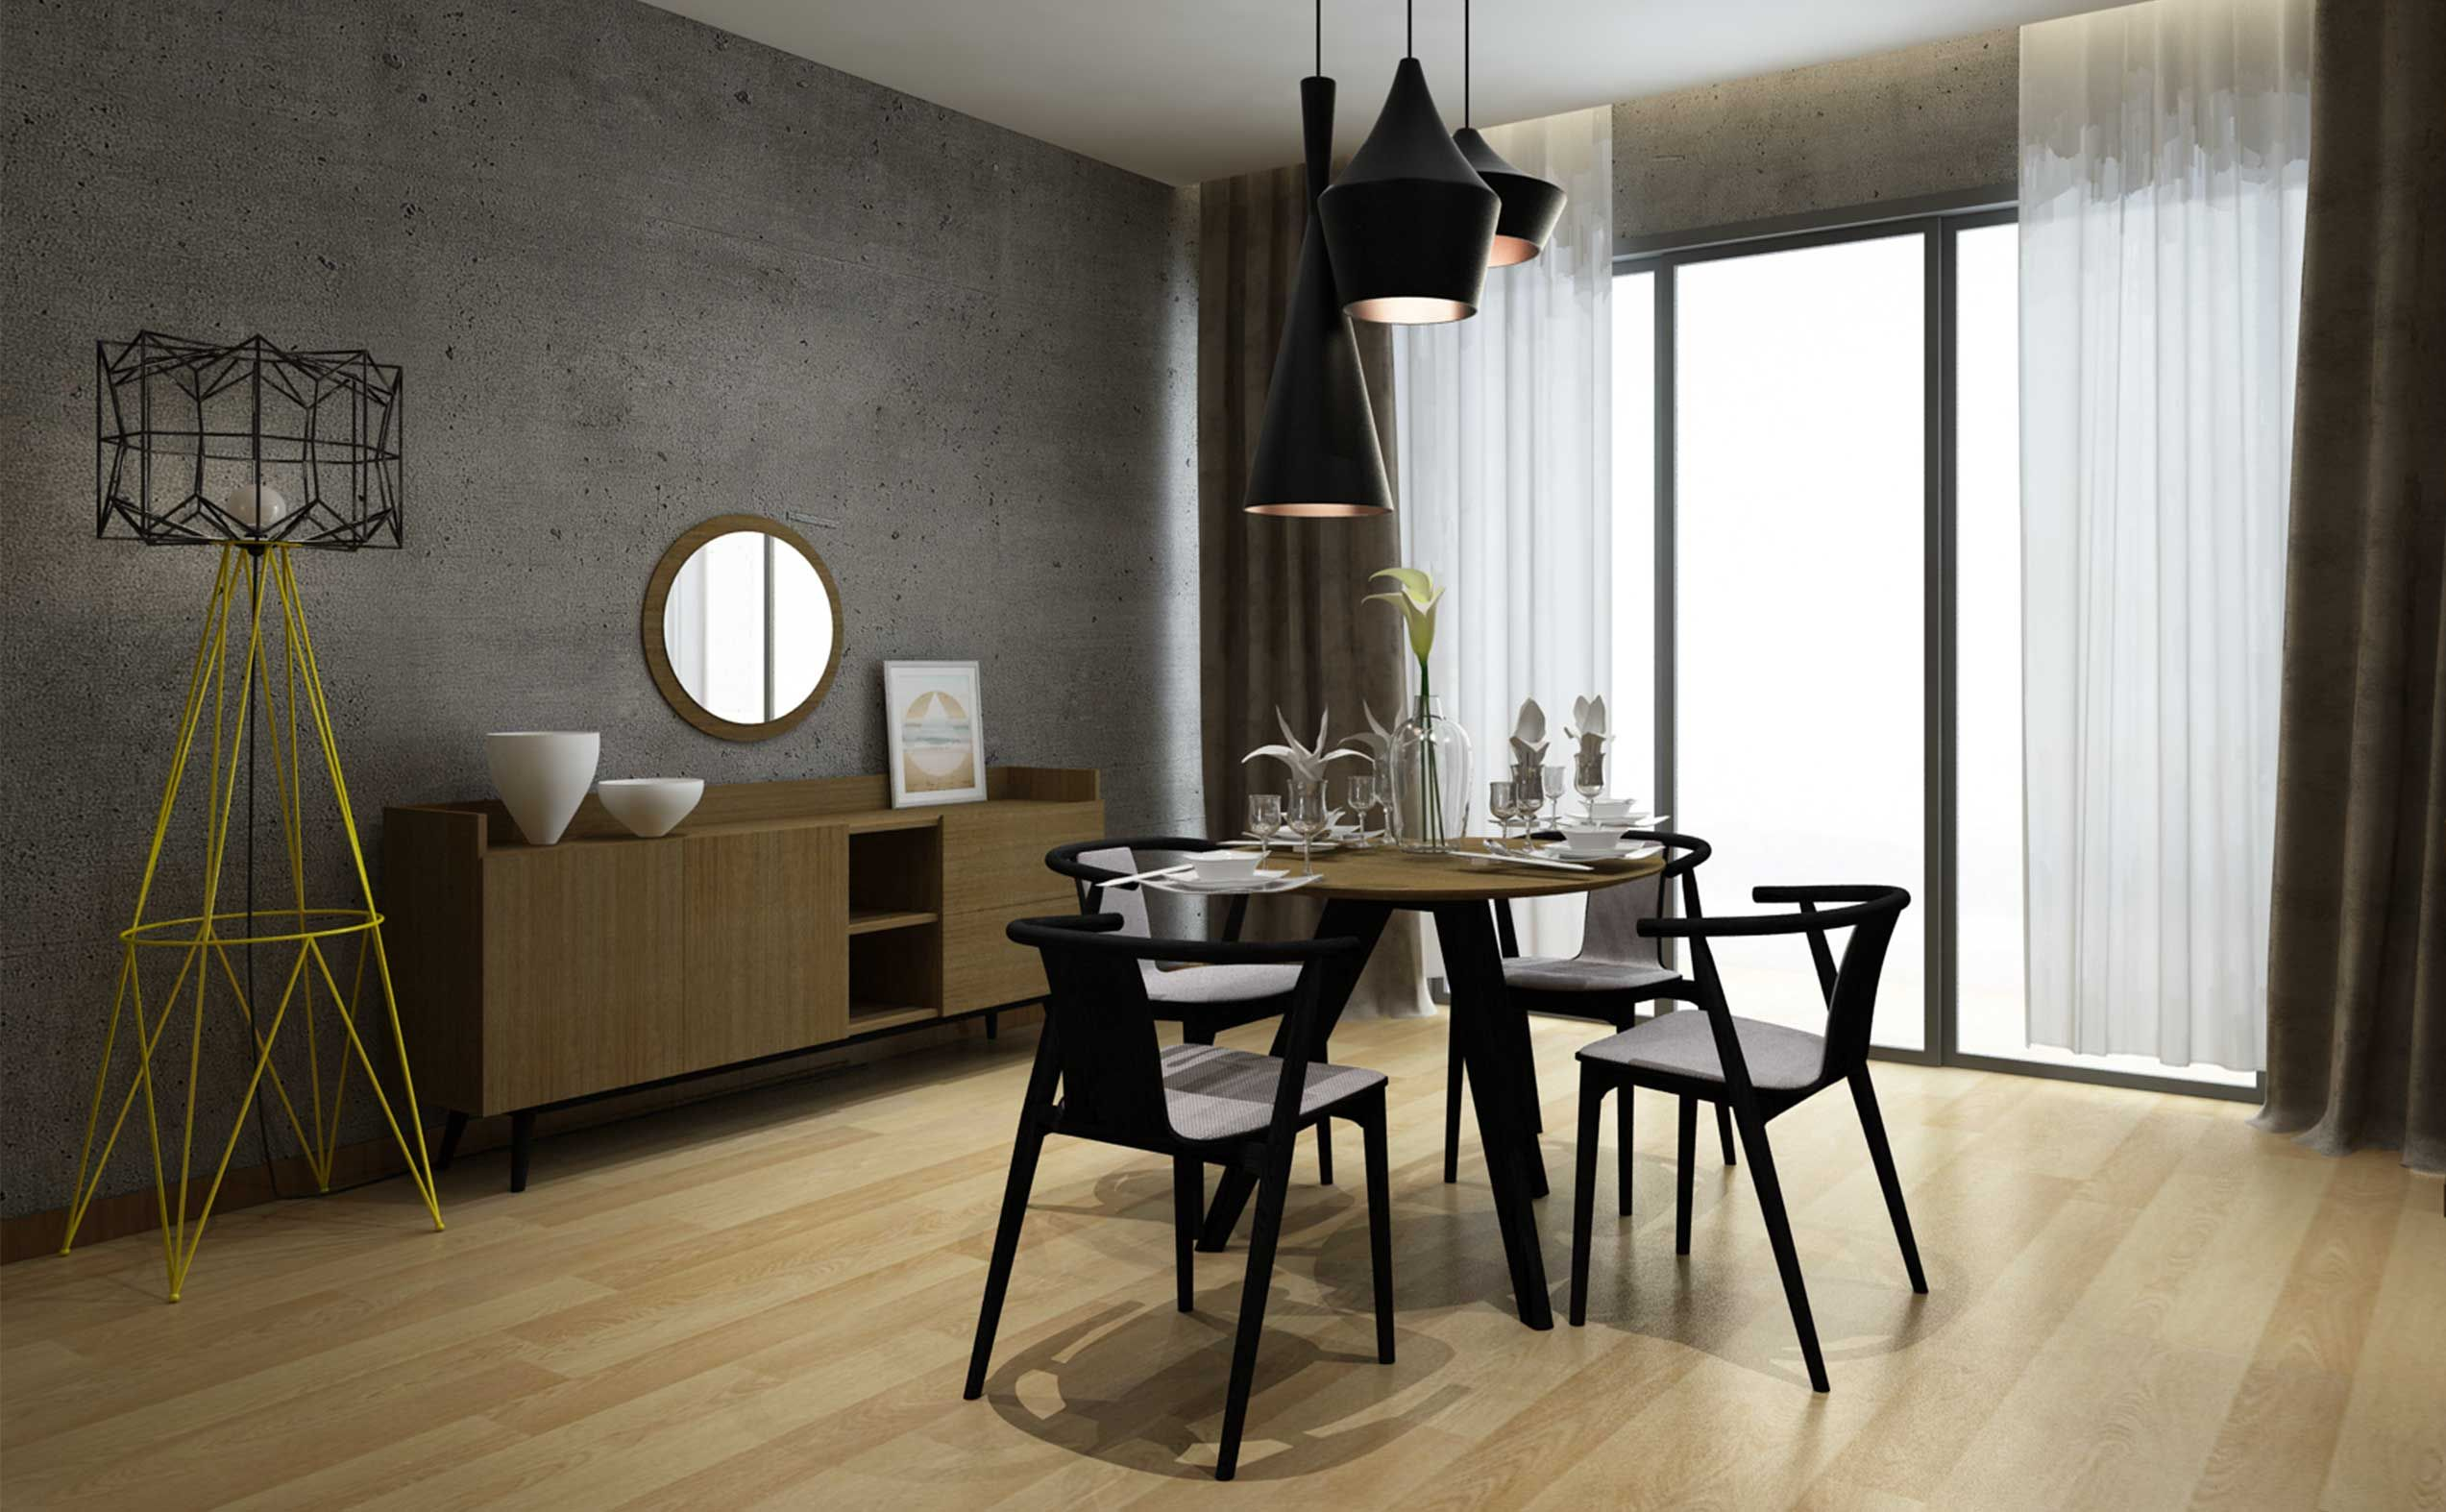 Apartment Furniture Packages Melbourne | New home | Pinterest ...